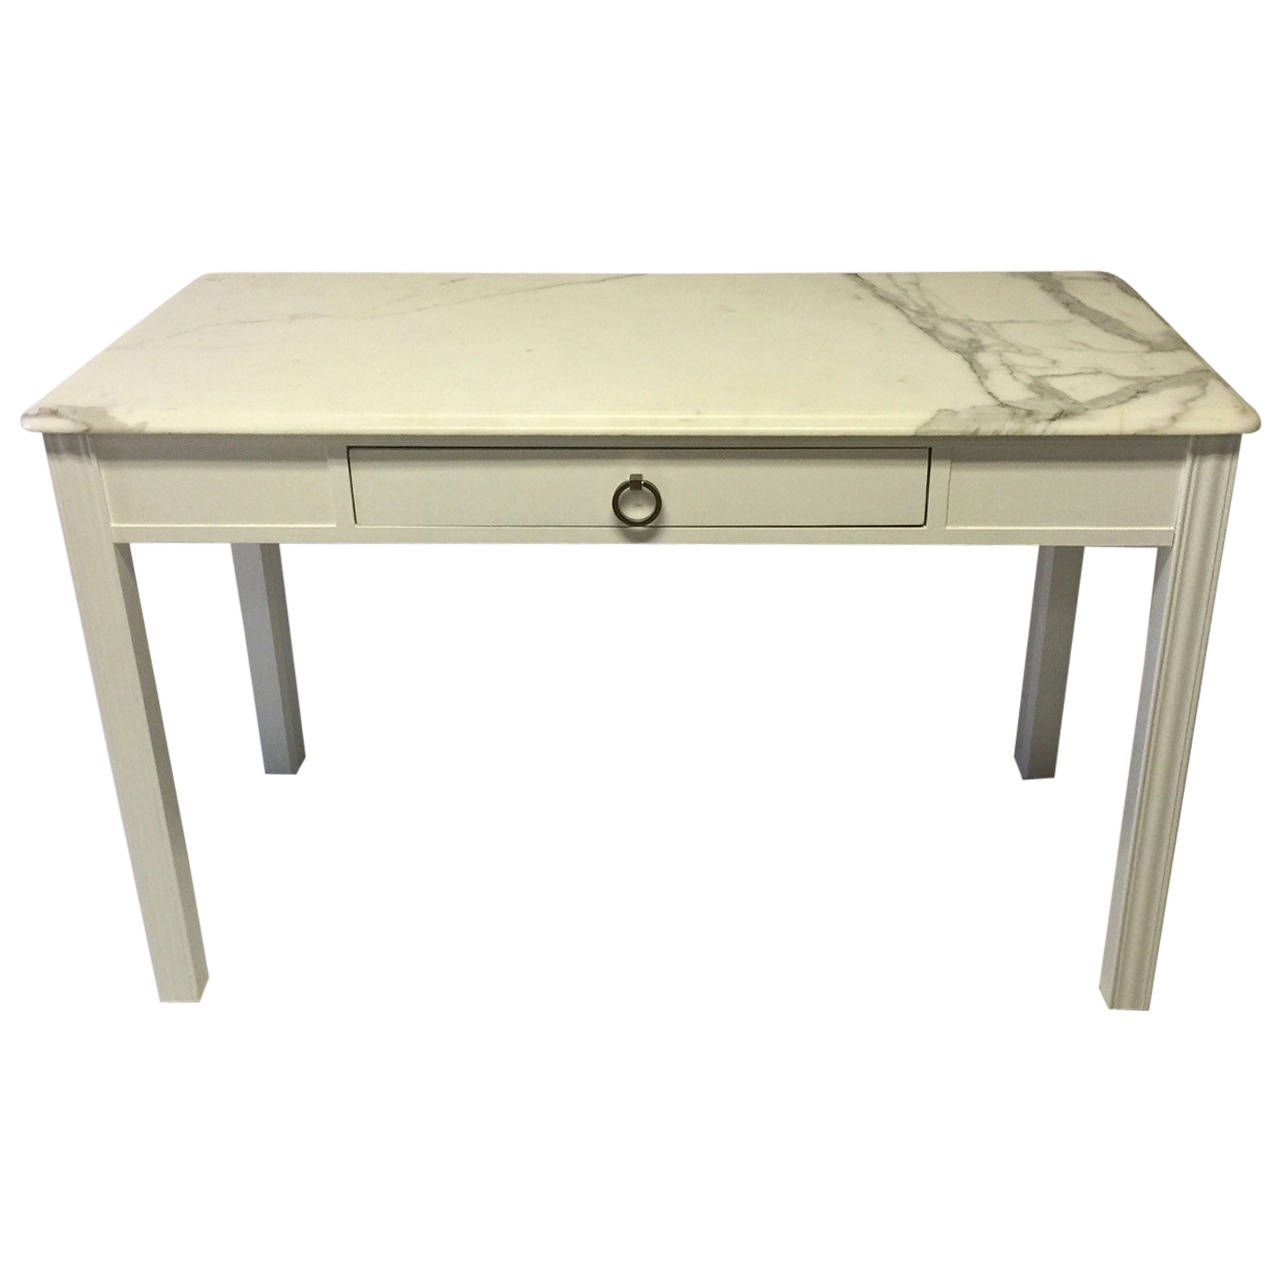 Kimball Bedroom Furniture Kimball Lacquered Desk With Carrara Marble Top Tops Marble Top